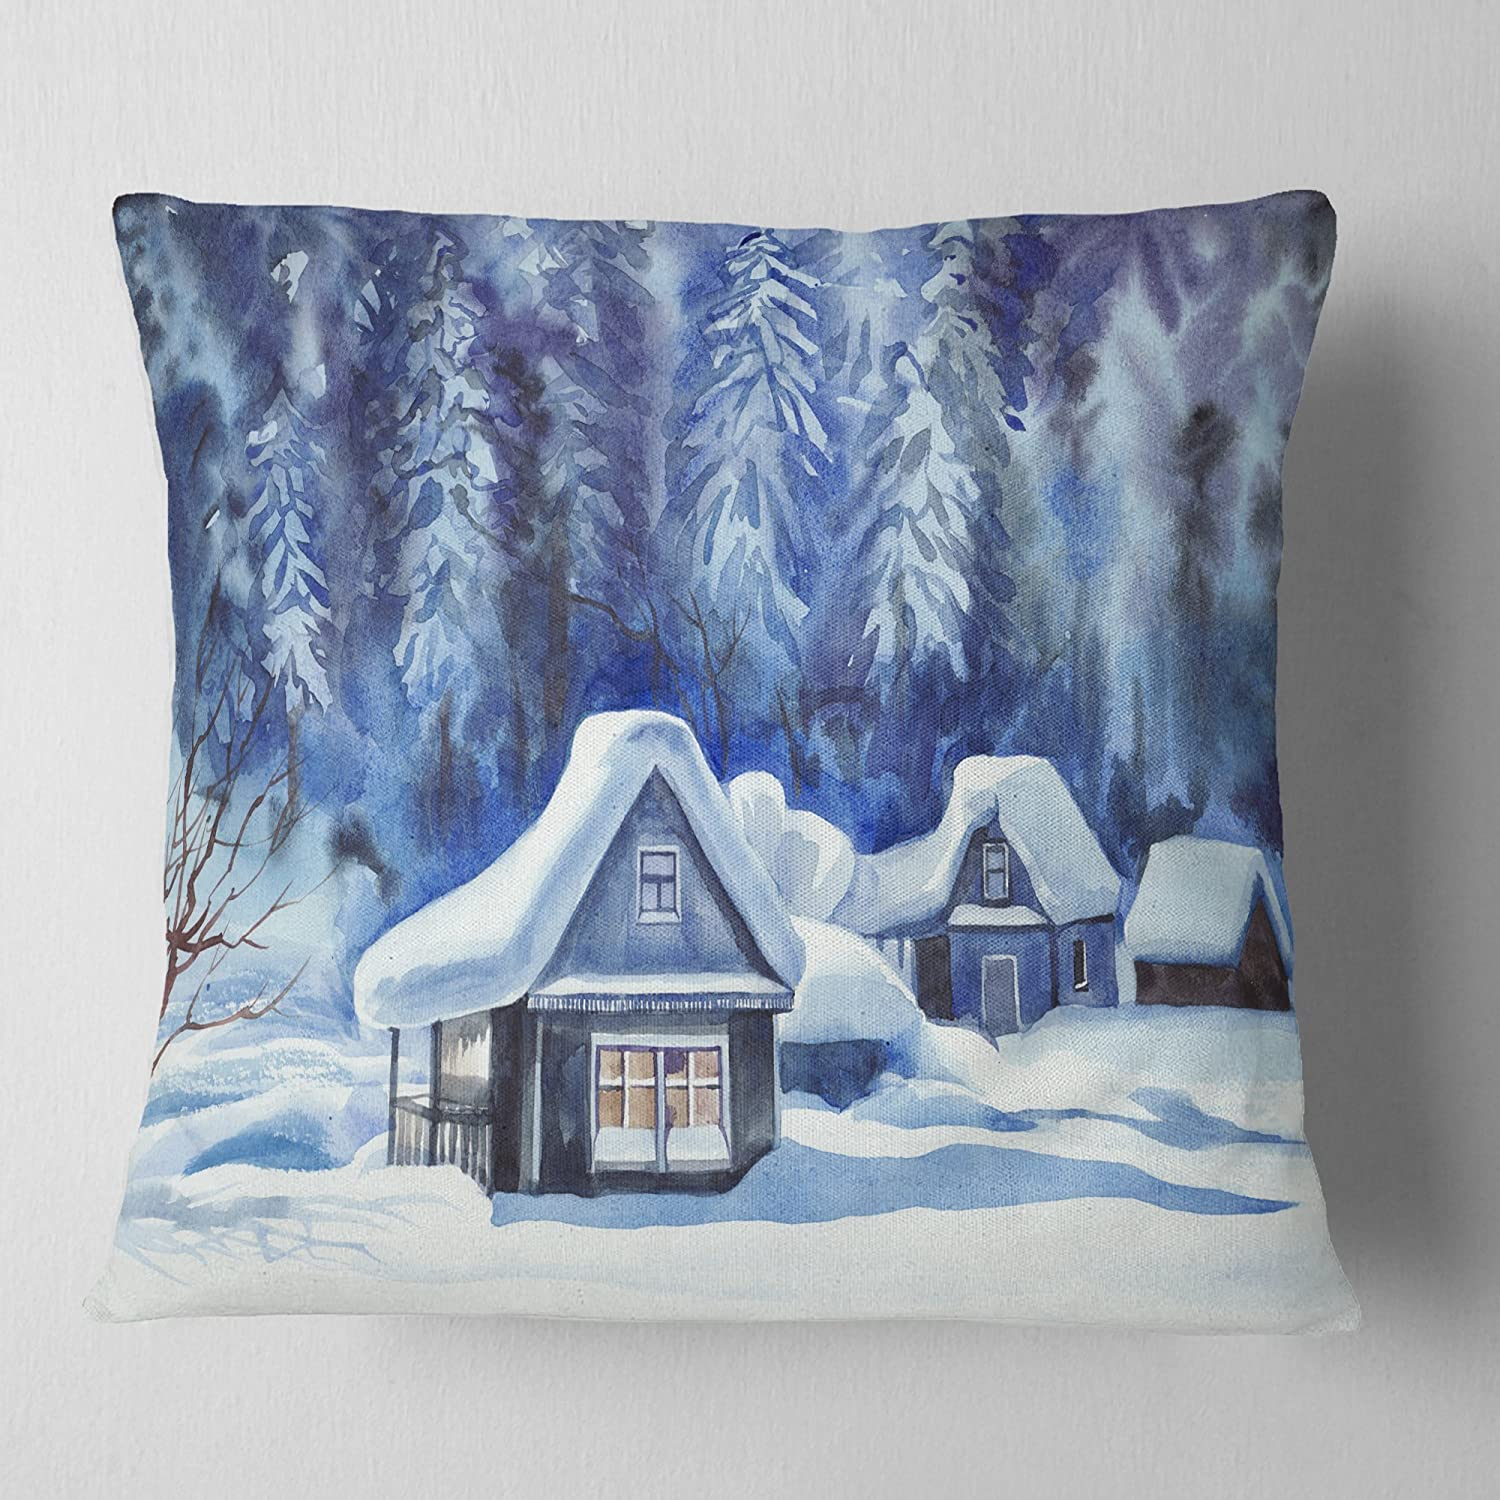 Designart CU7455-16-16 Blue Winter Cottages' Landscape Printed Cushion Cover for Living Room, Sofa Throw Pillow 16 in. x 16 in. in